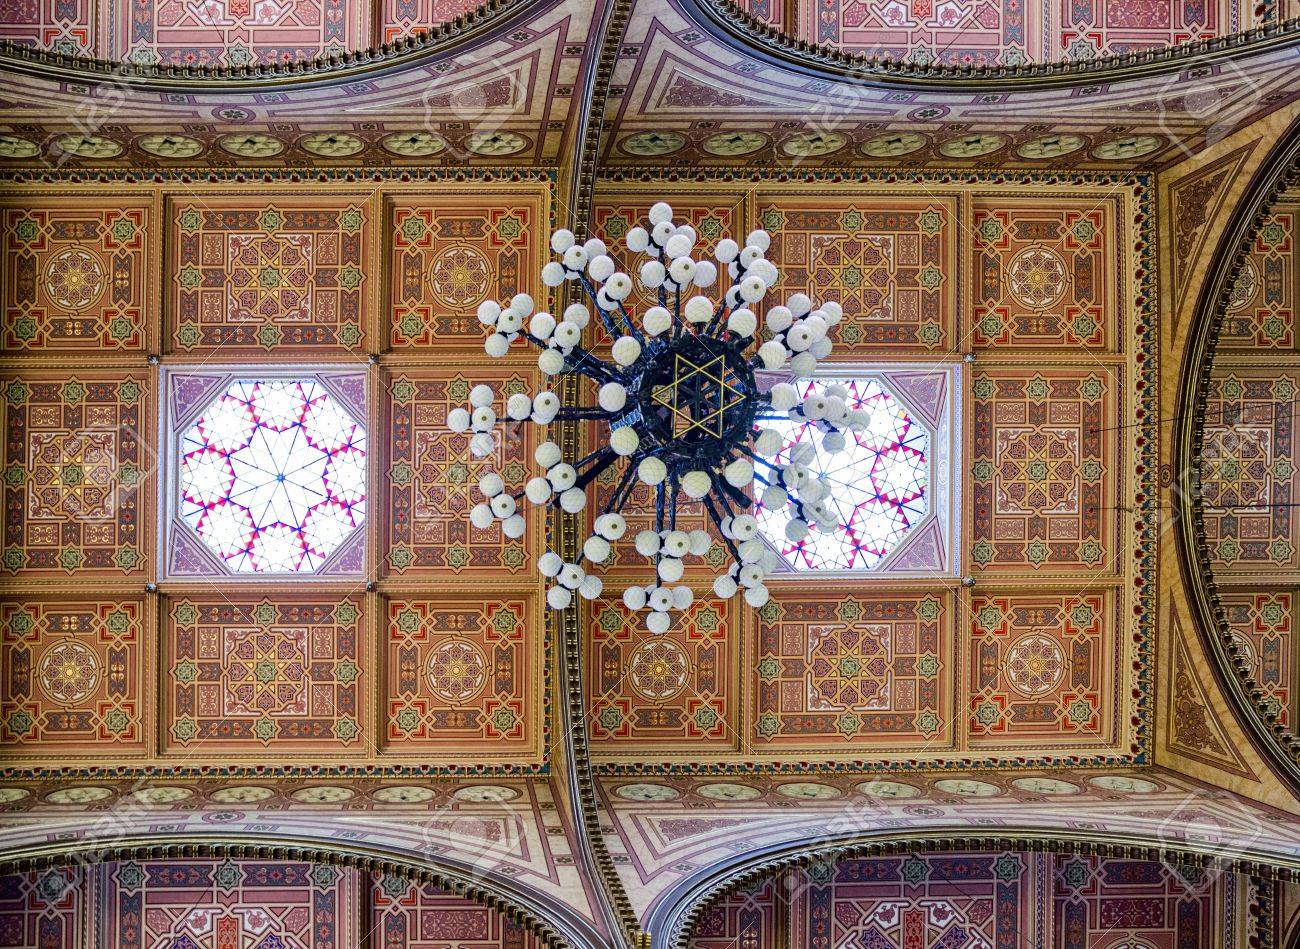 Budapest hungary may 7 chandelier in great jewish synagogue budapest hungary may 7 chandelier in great jewish synagogue biggest in europe aloadofball Gallery